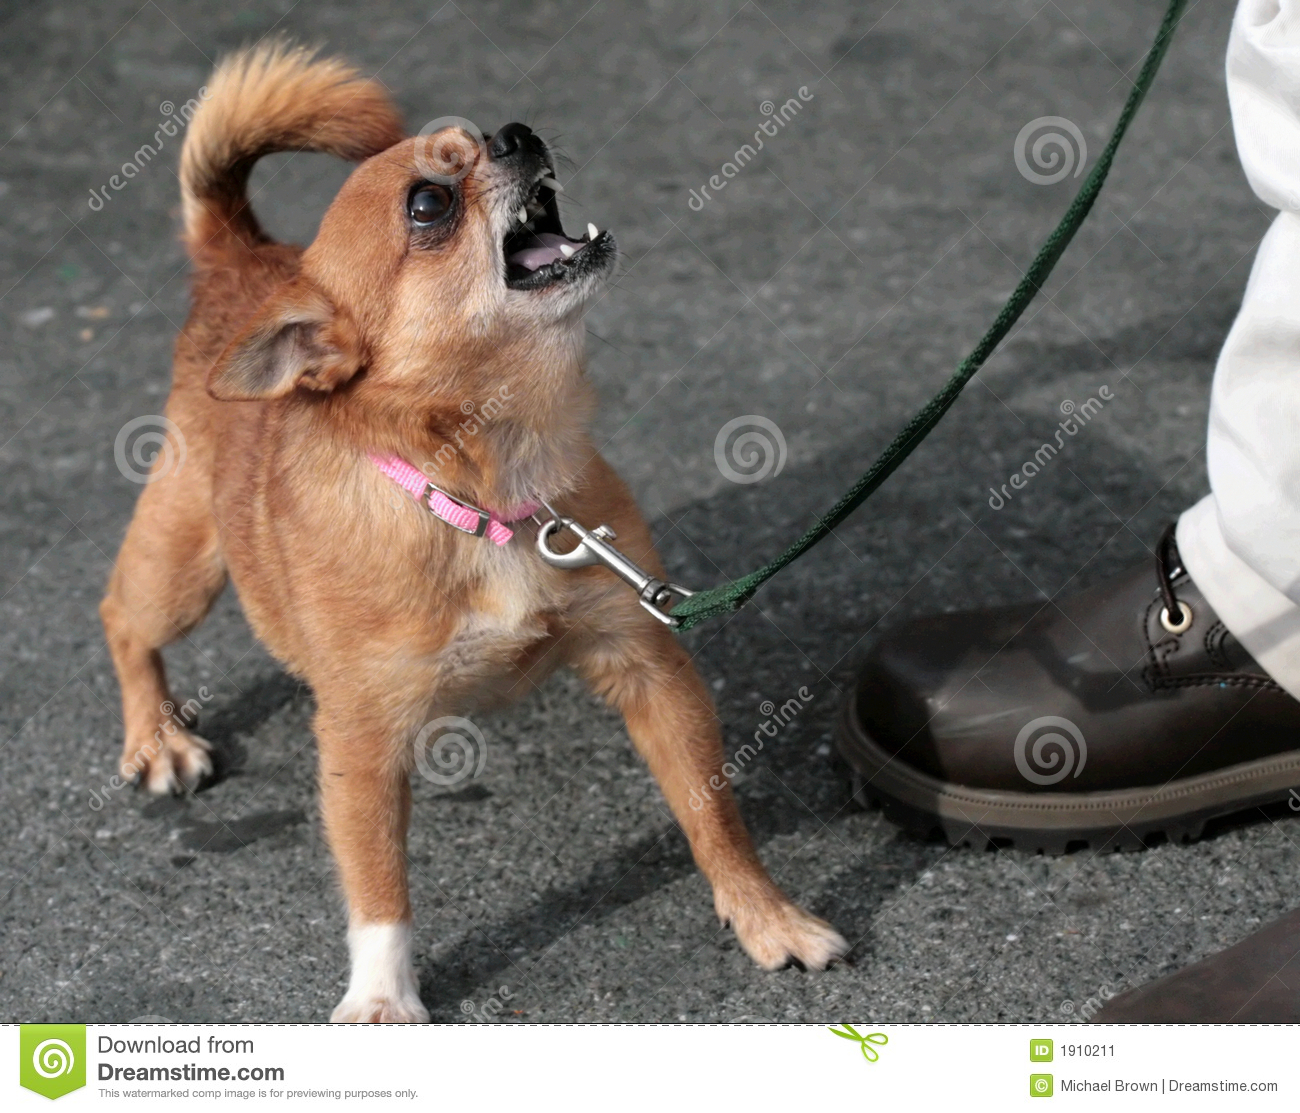 Mean Chihuahua Stock Image - Image: 1910211